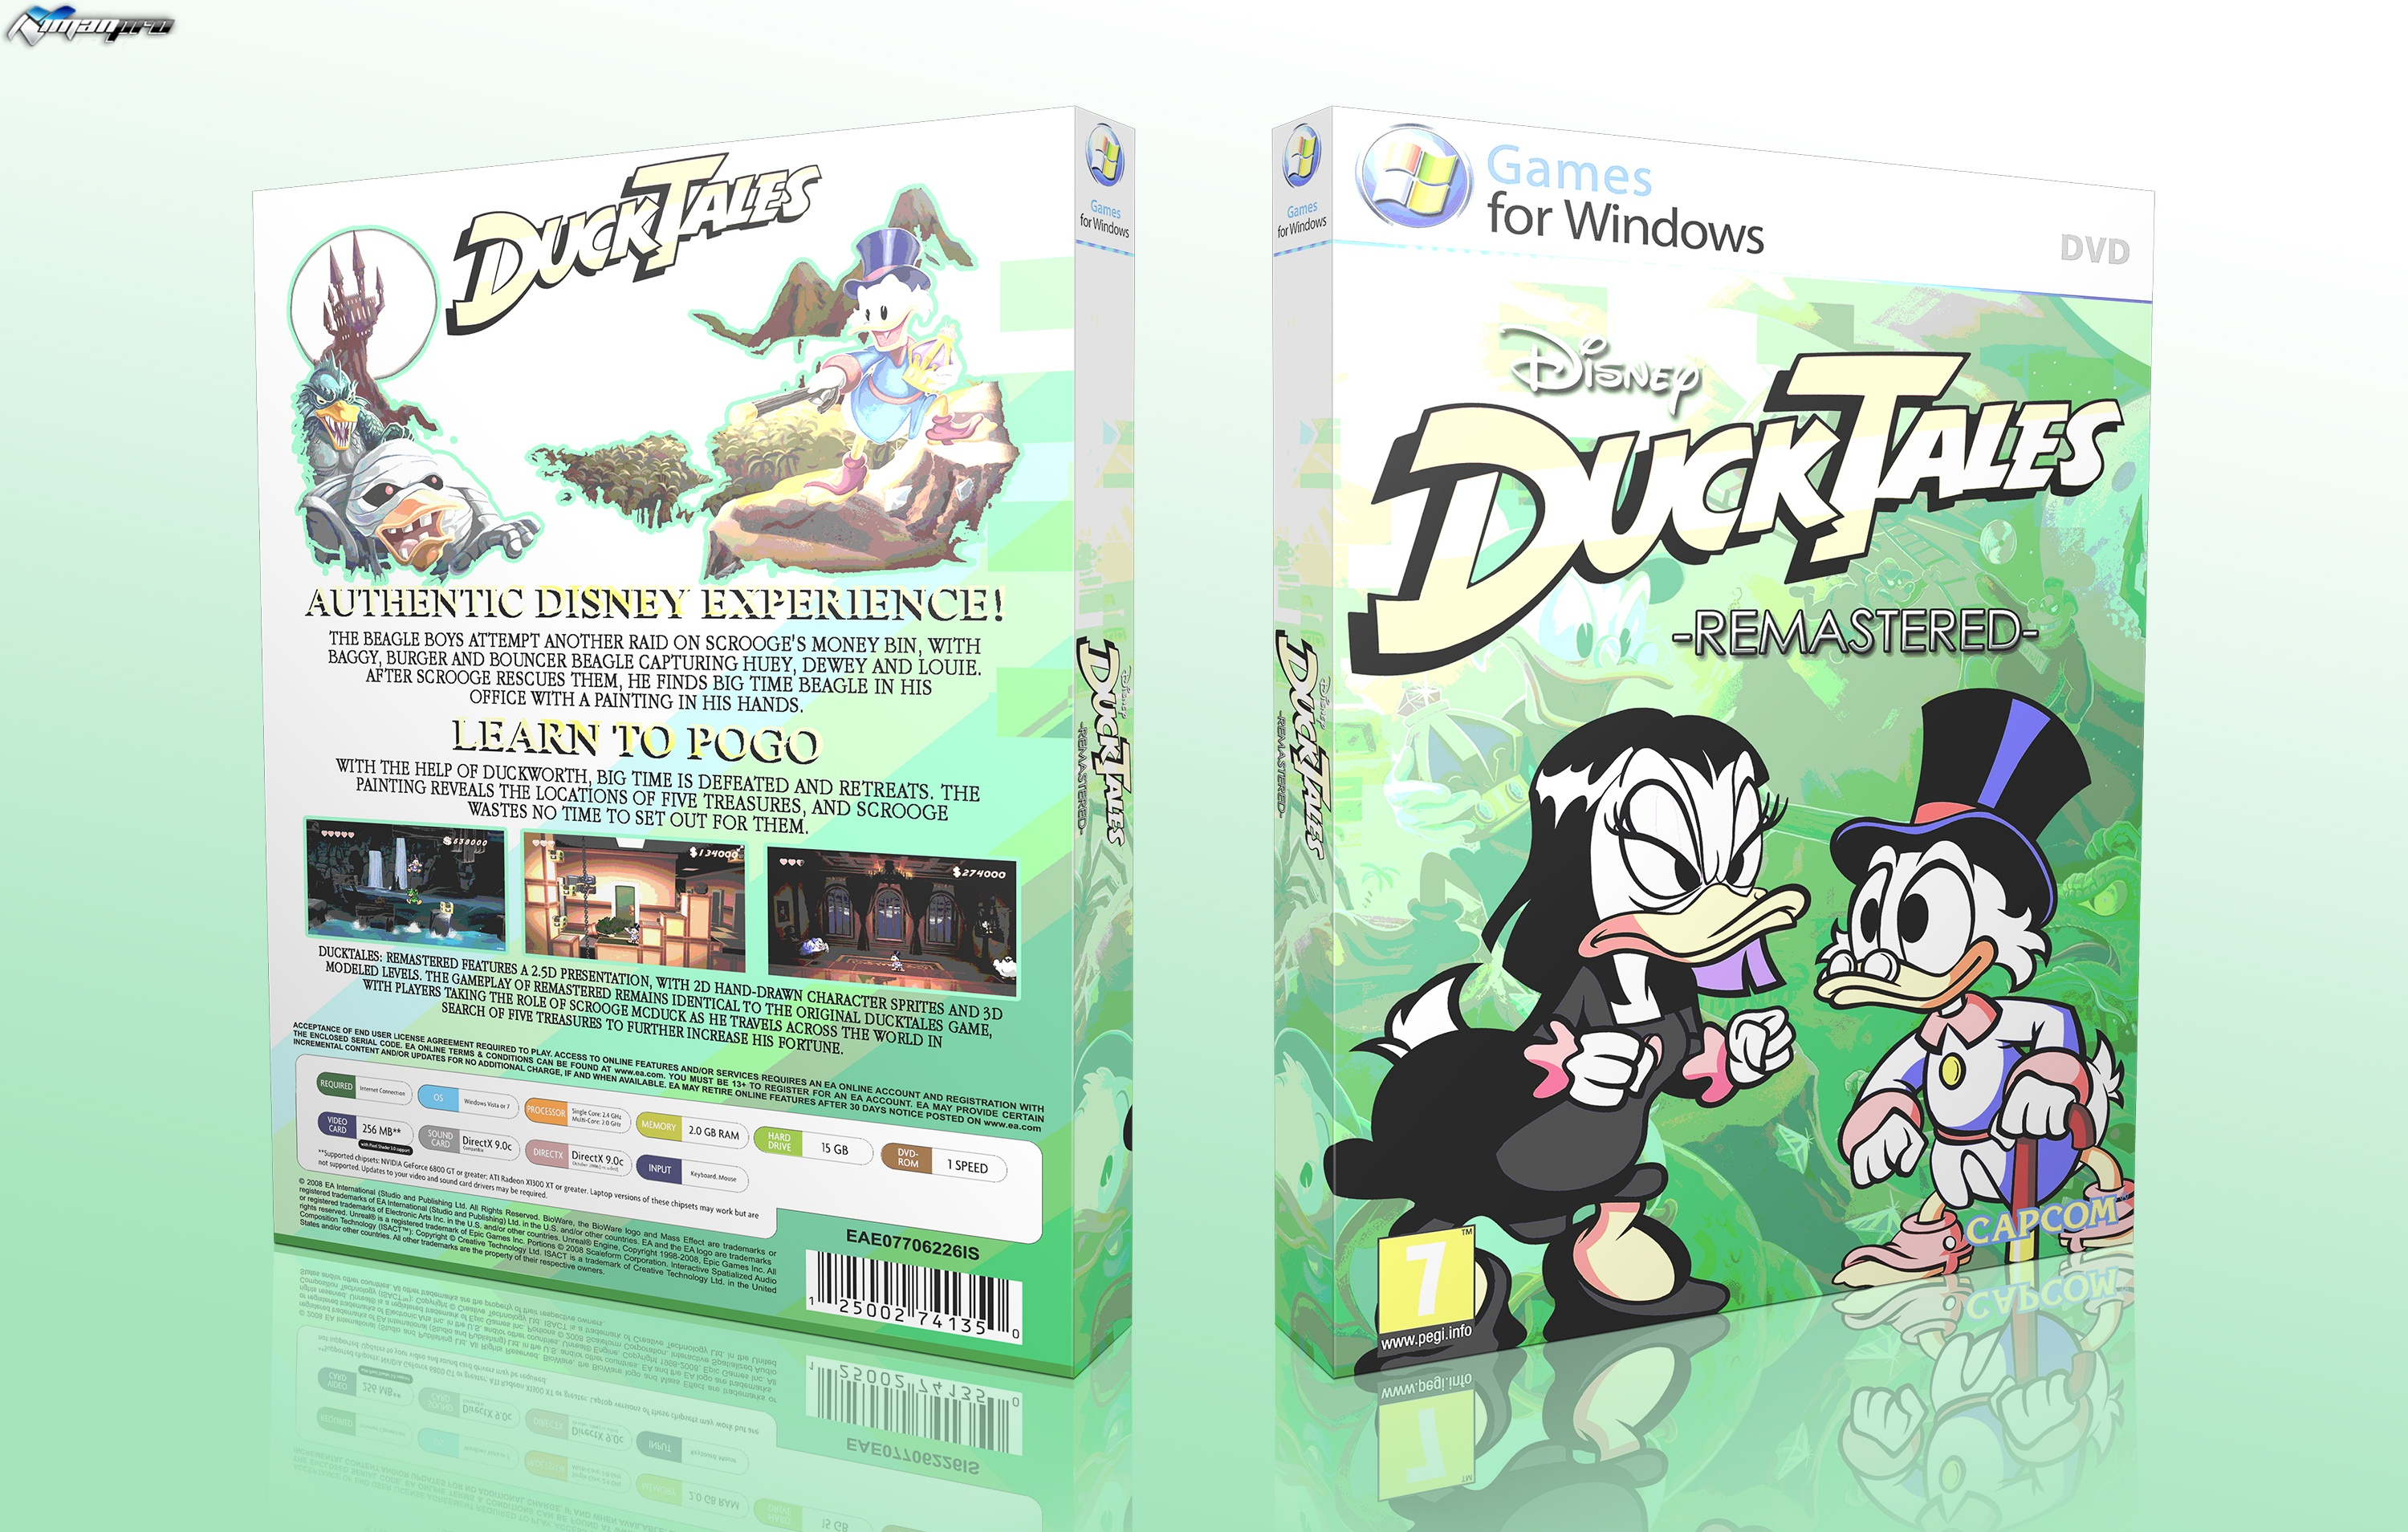 Duck Tales Remastered box cover